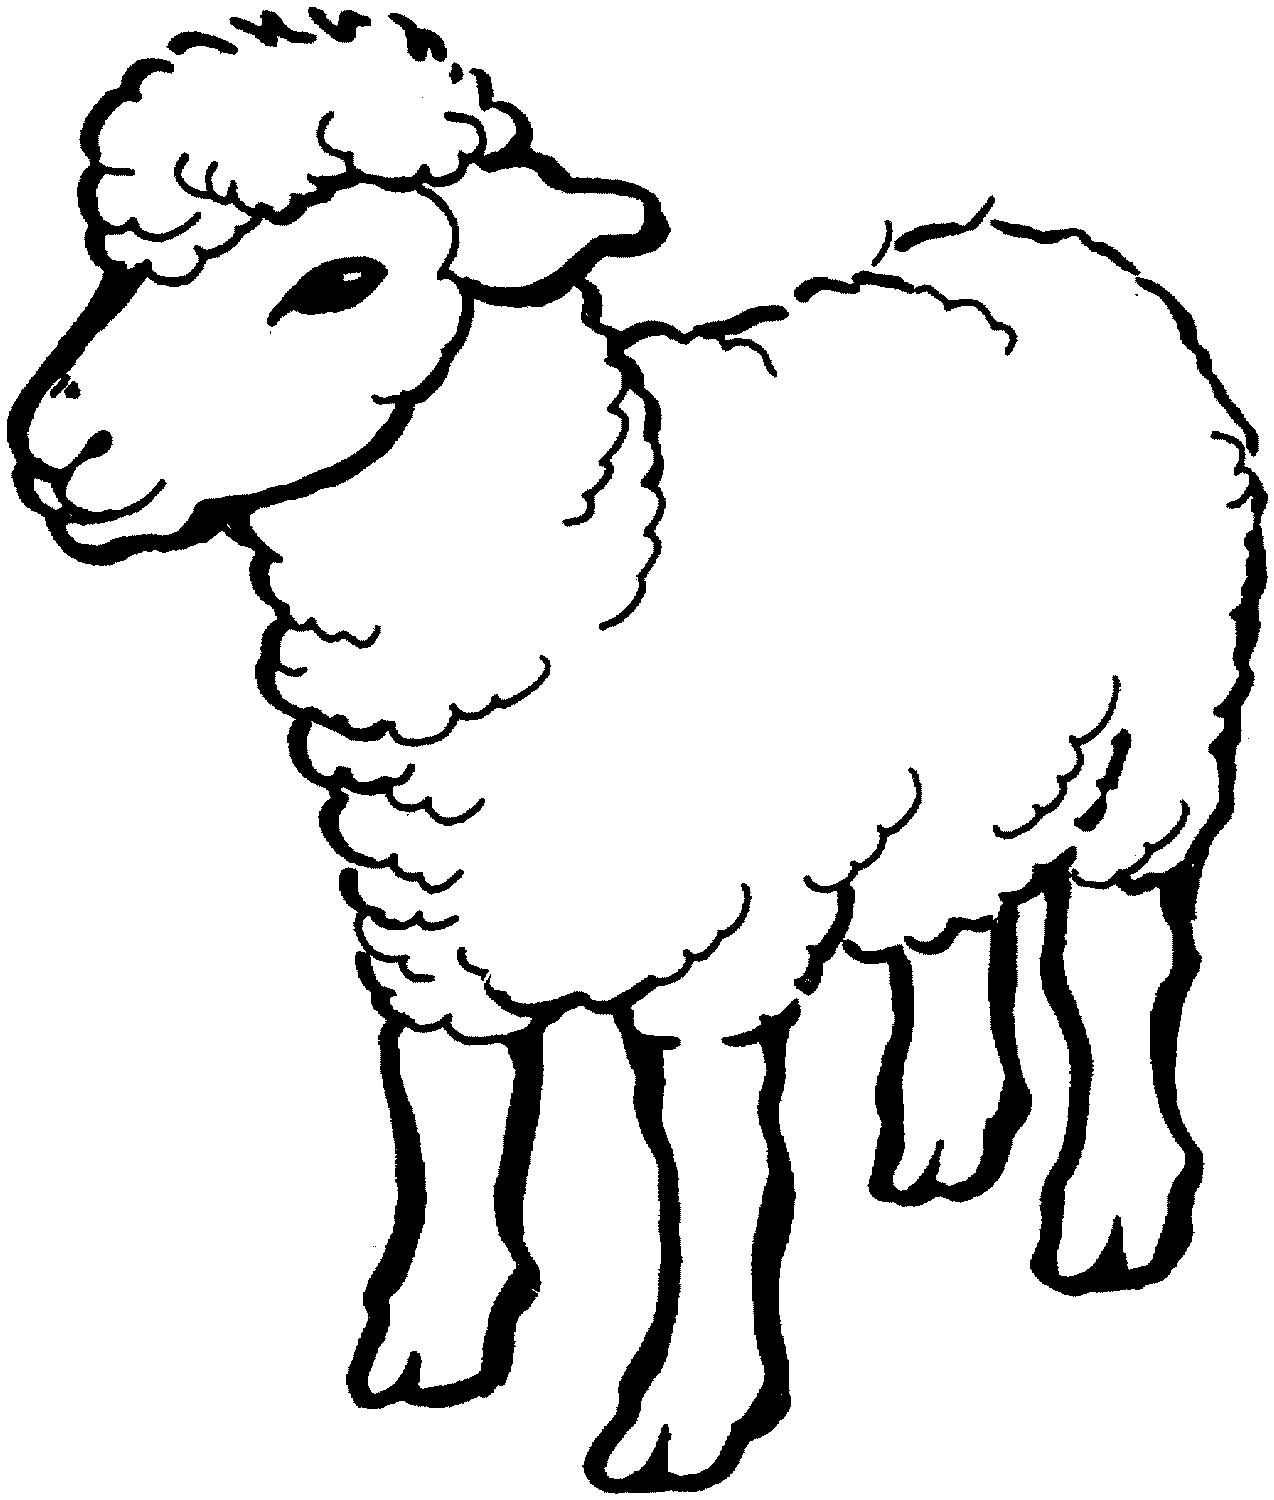 28 Lamb Coloring Page Collections | FREE COLORING PAGES